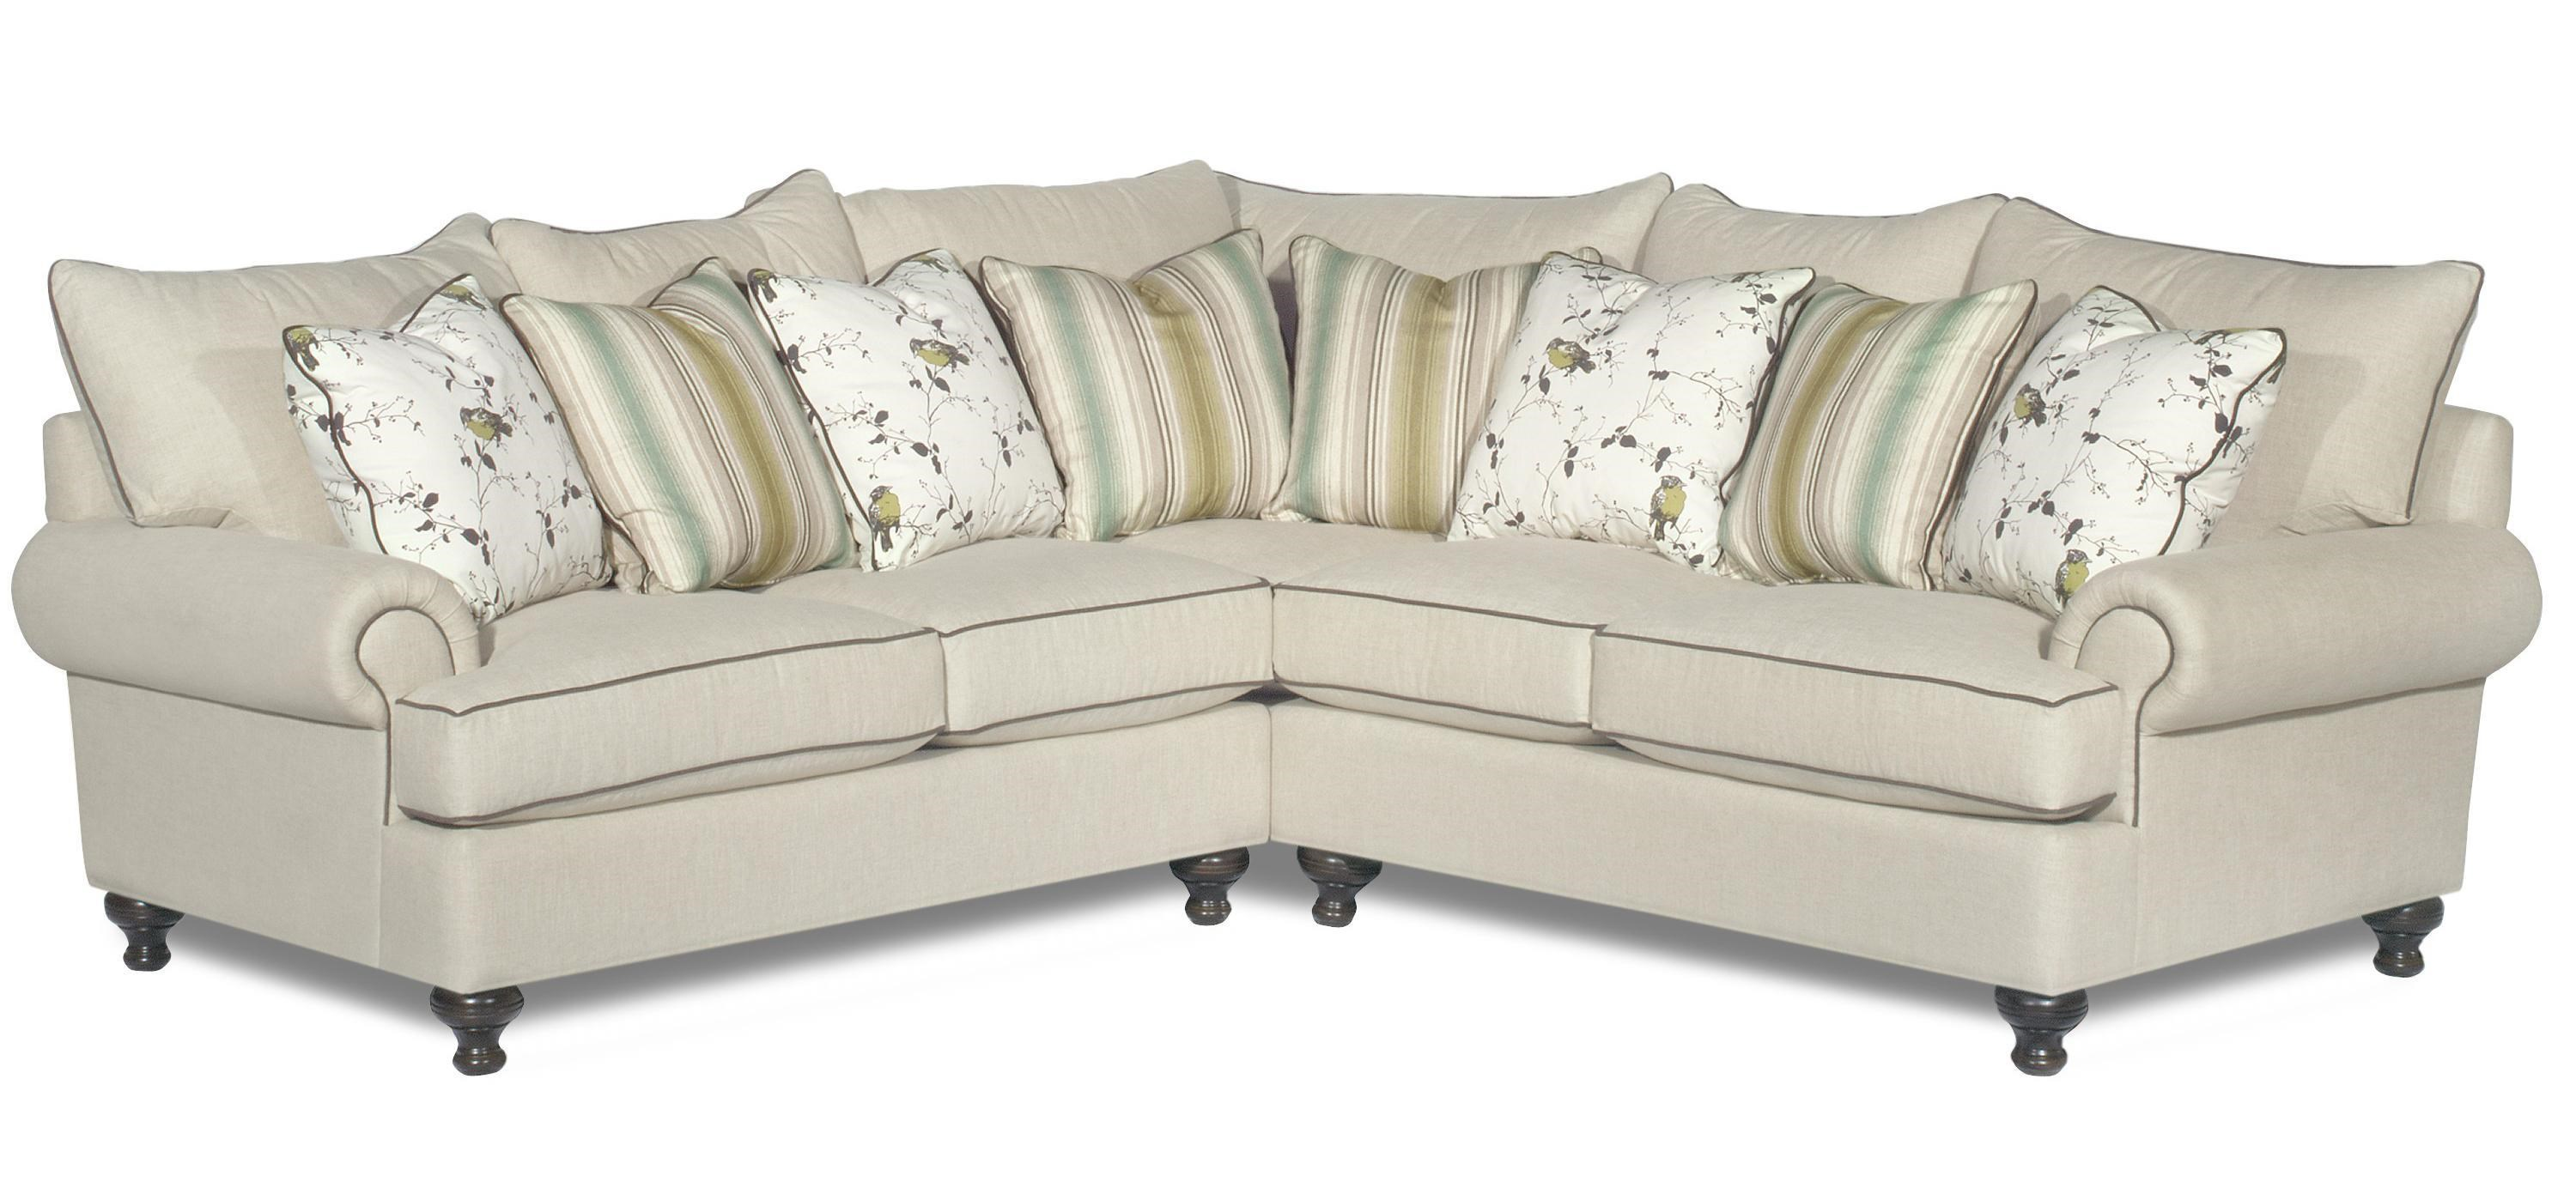 Paula Deen By Craftmaster P711700 2 Piece Sectional Sofa With Rolled Arms  And Turned Feet   Hudsonu0027s Furniture   Sectional Sofas